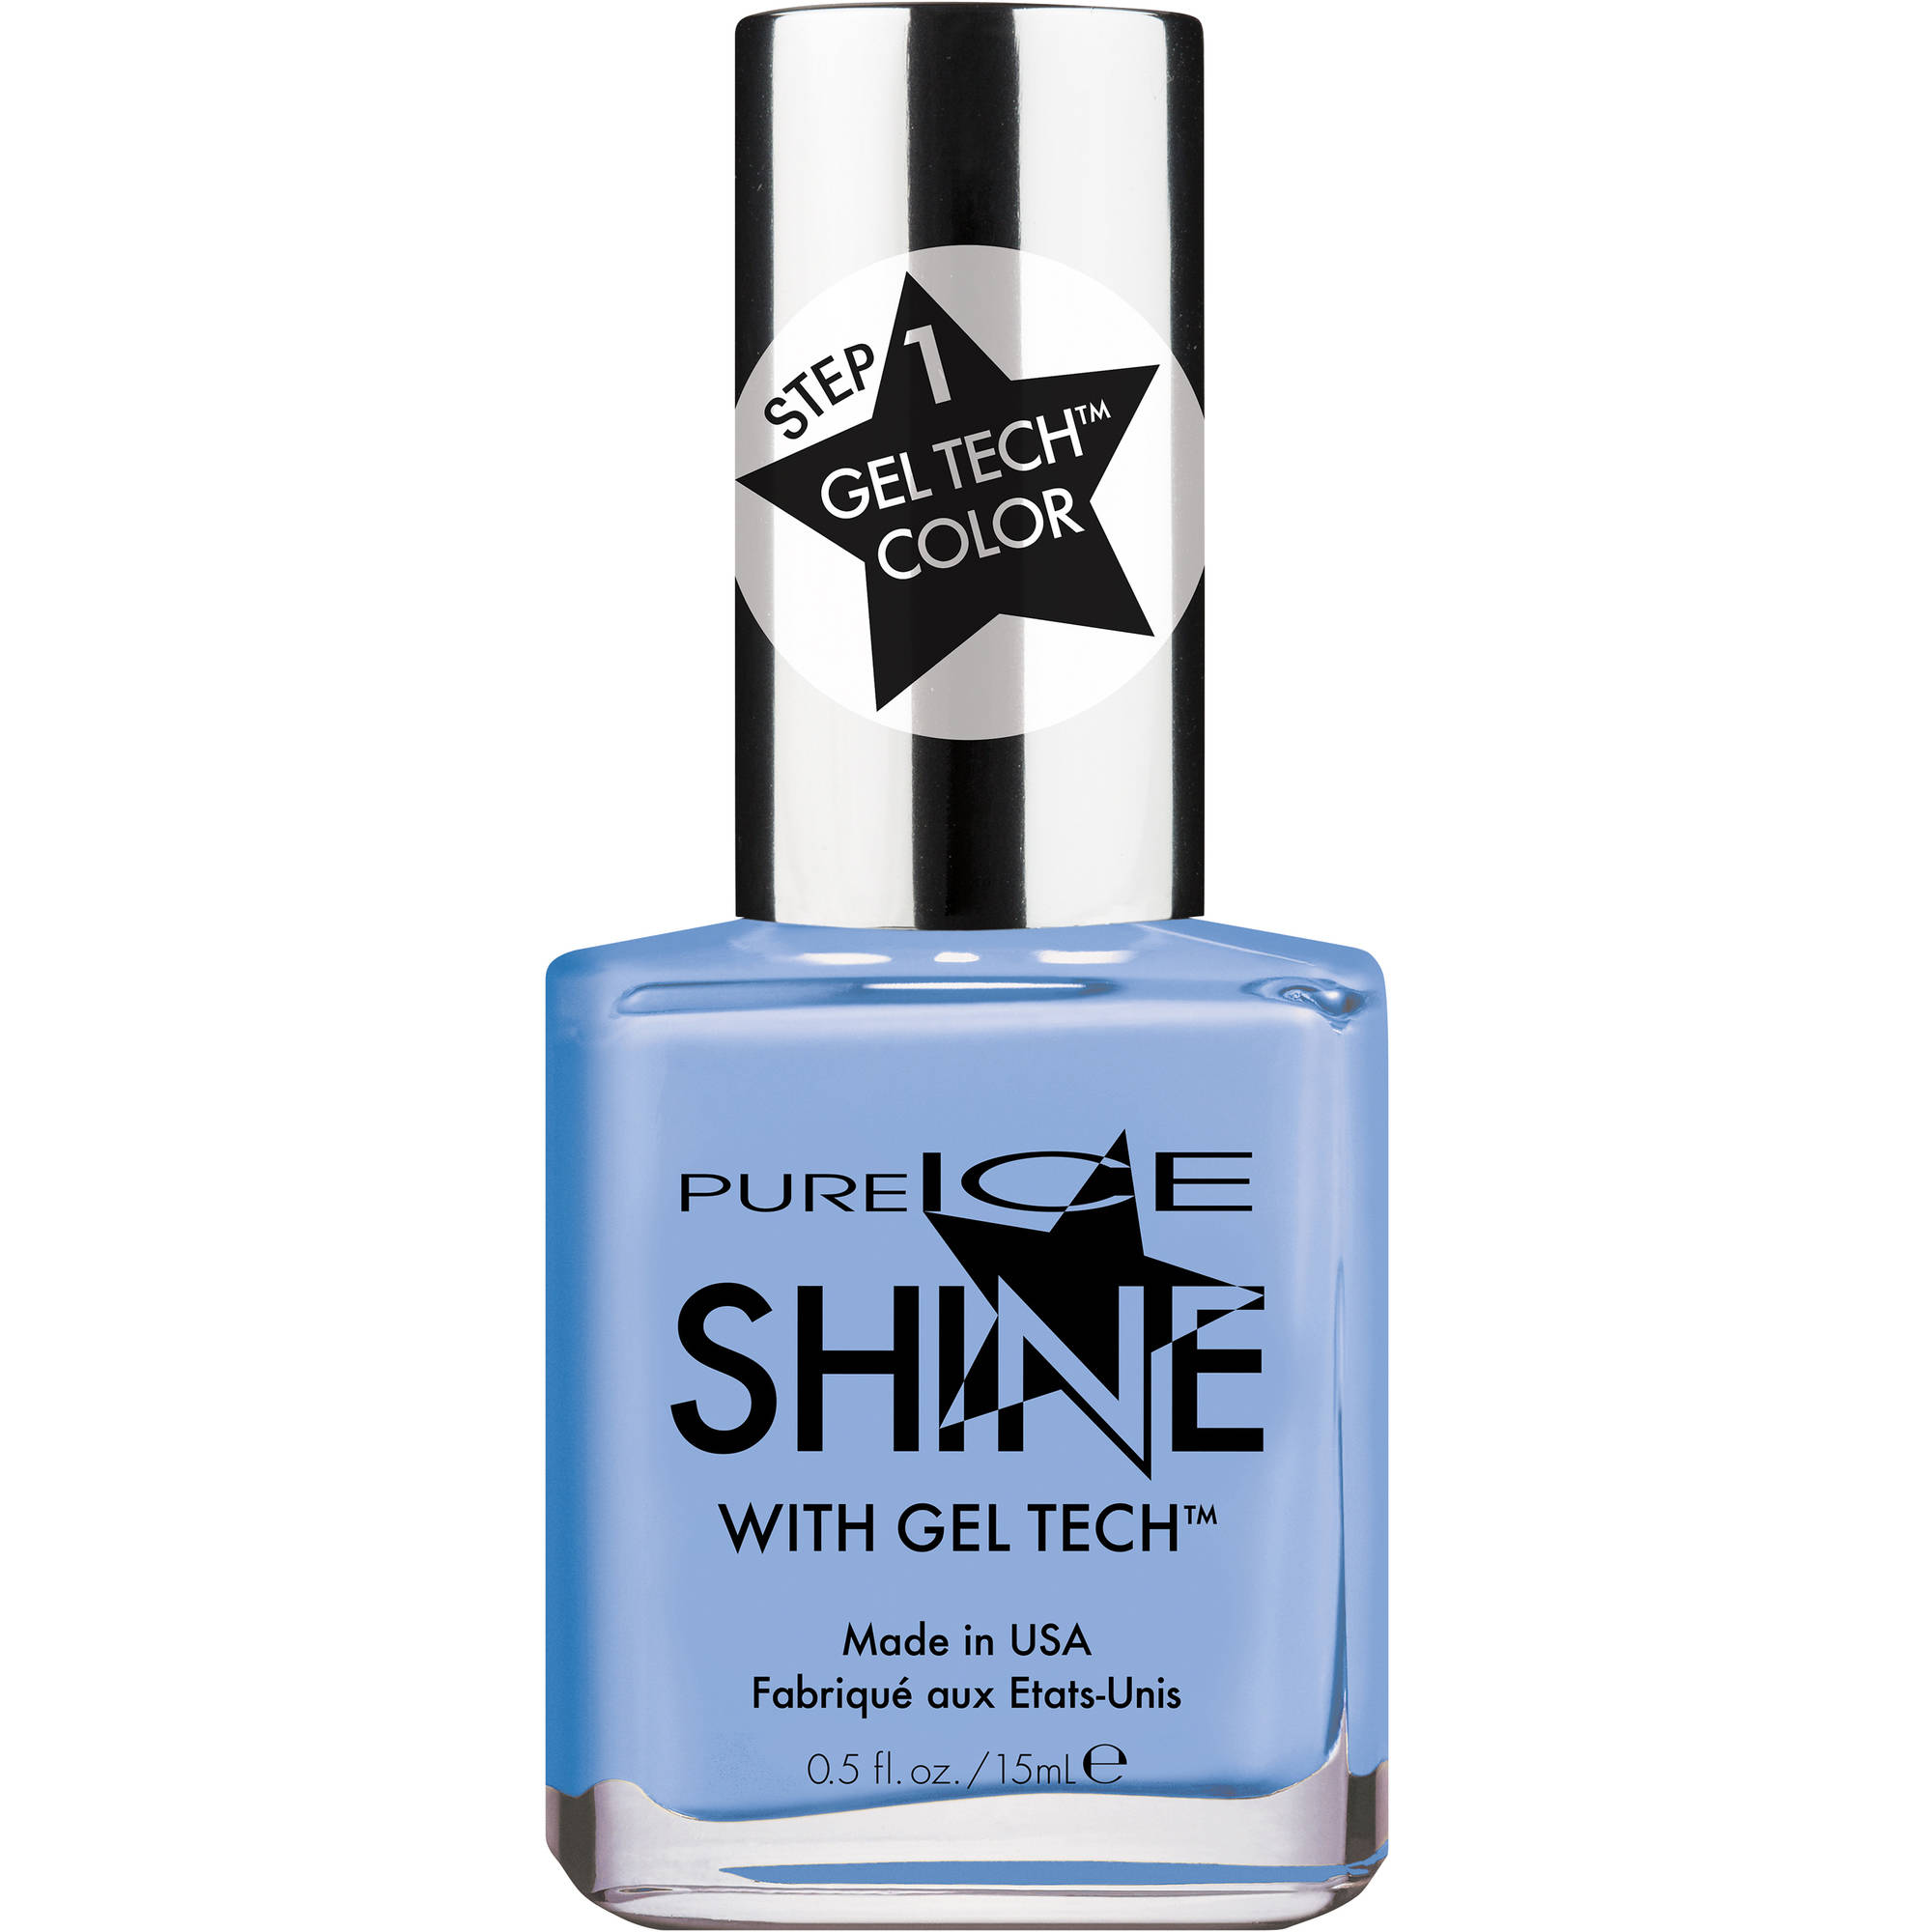 Pure Ice Shine with Gel Tech Nail Polish, Rain & Shine, 0.5 fl oz